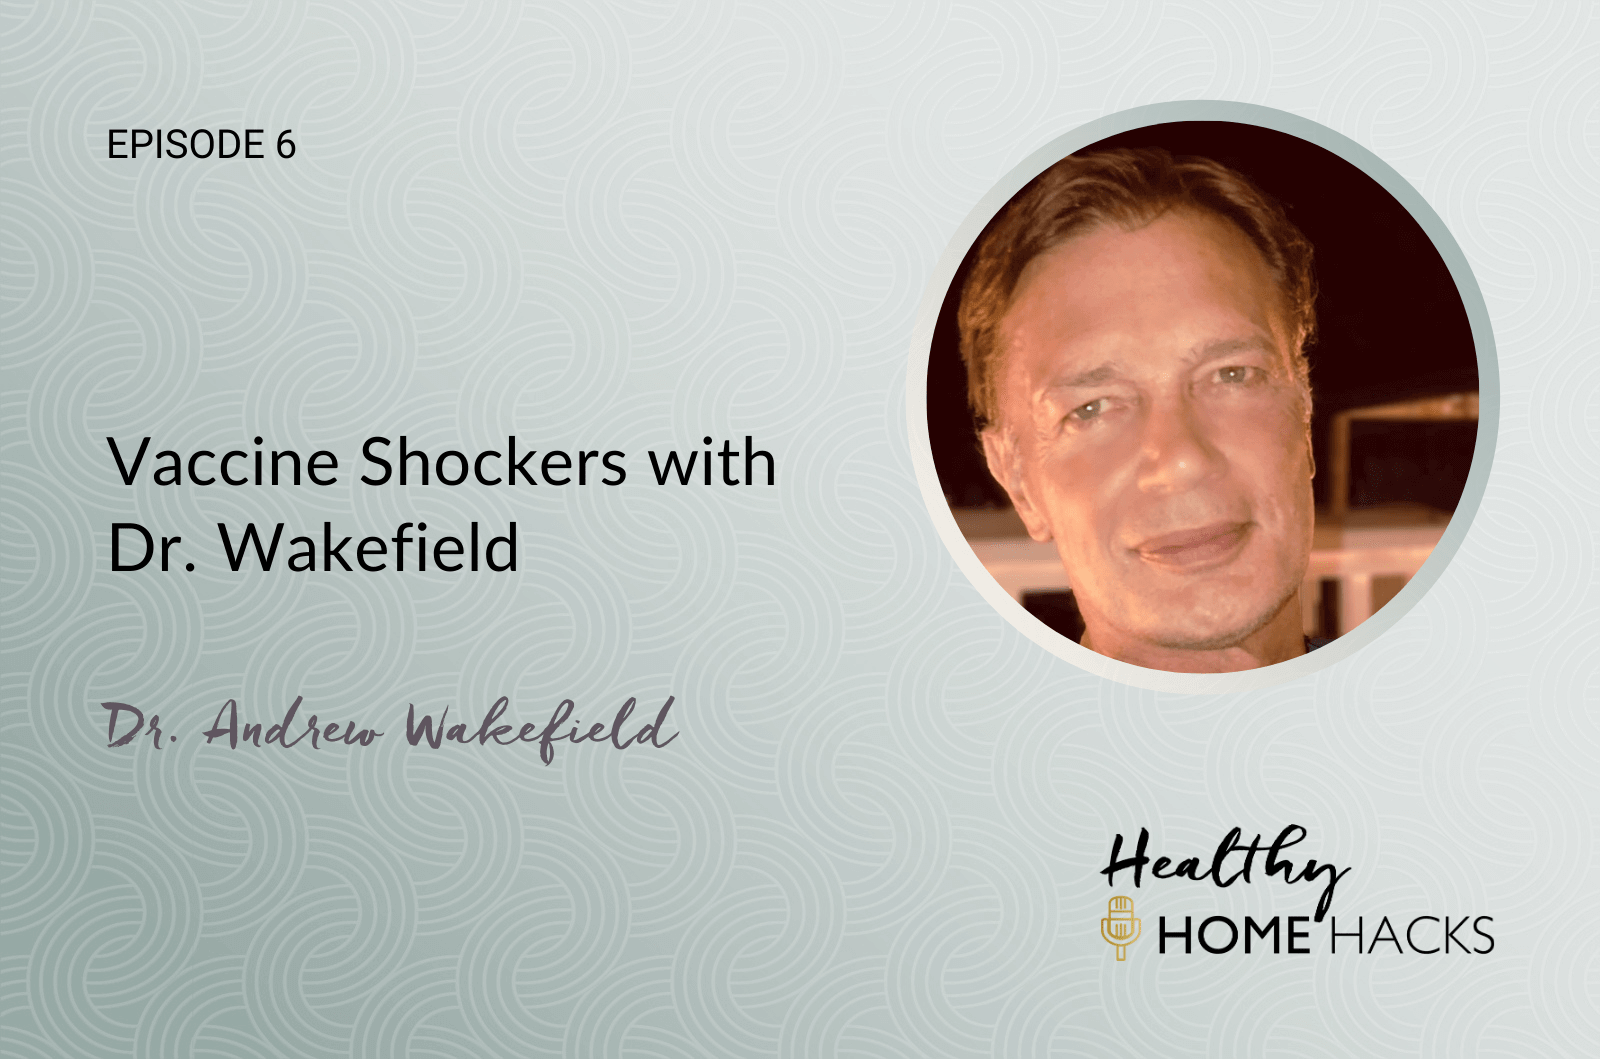 Vaccine Shockers with Dr. Wakefield